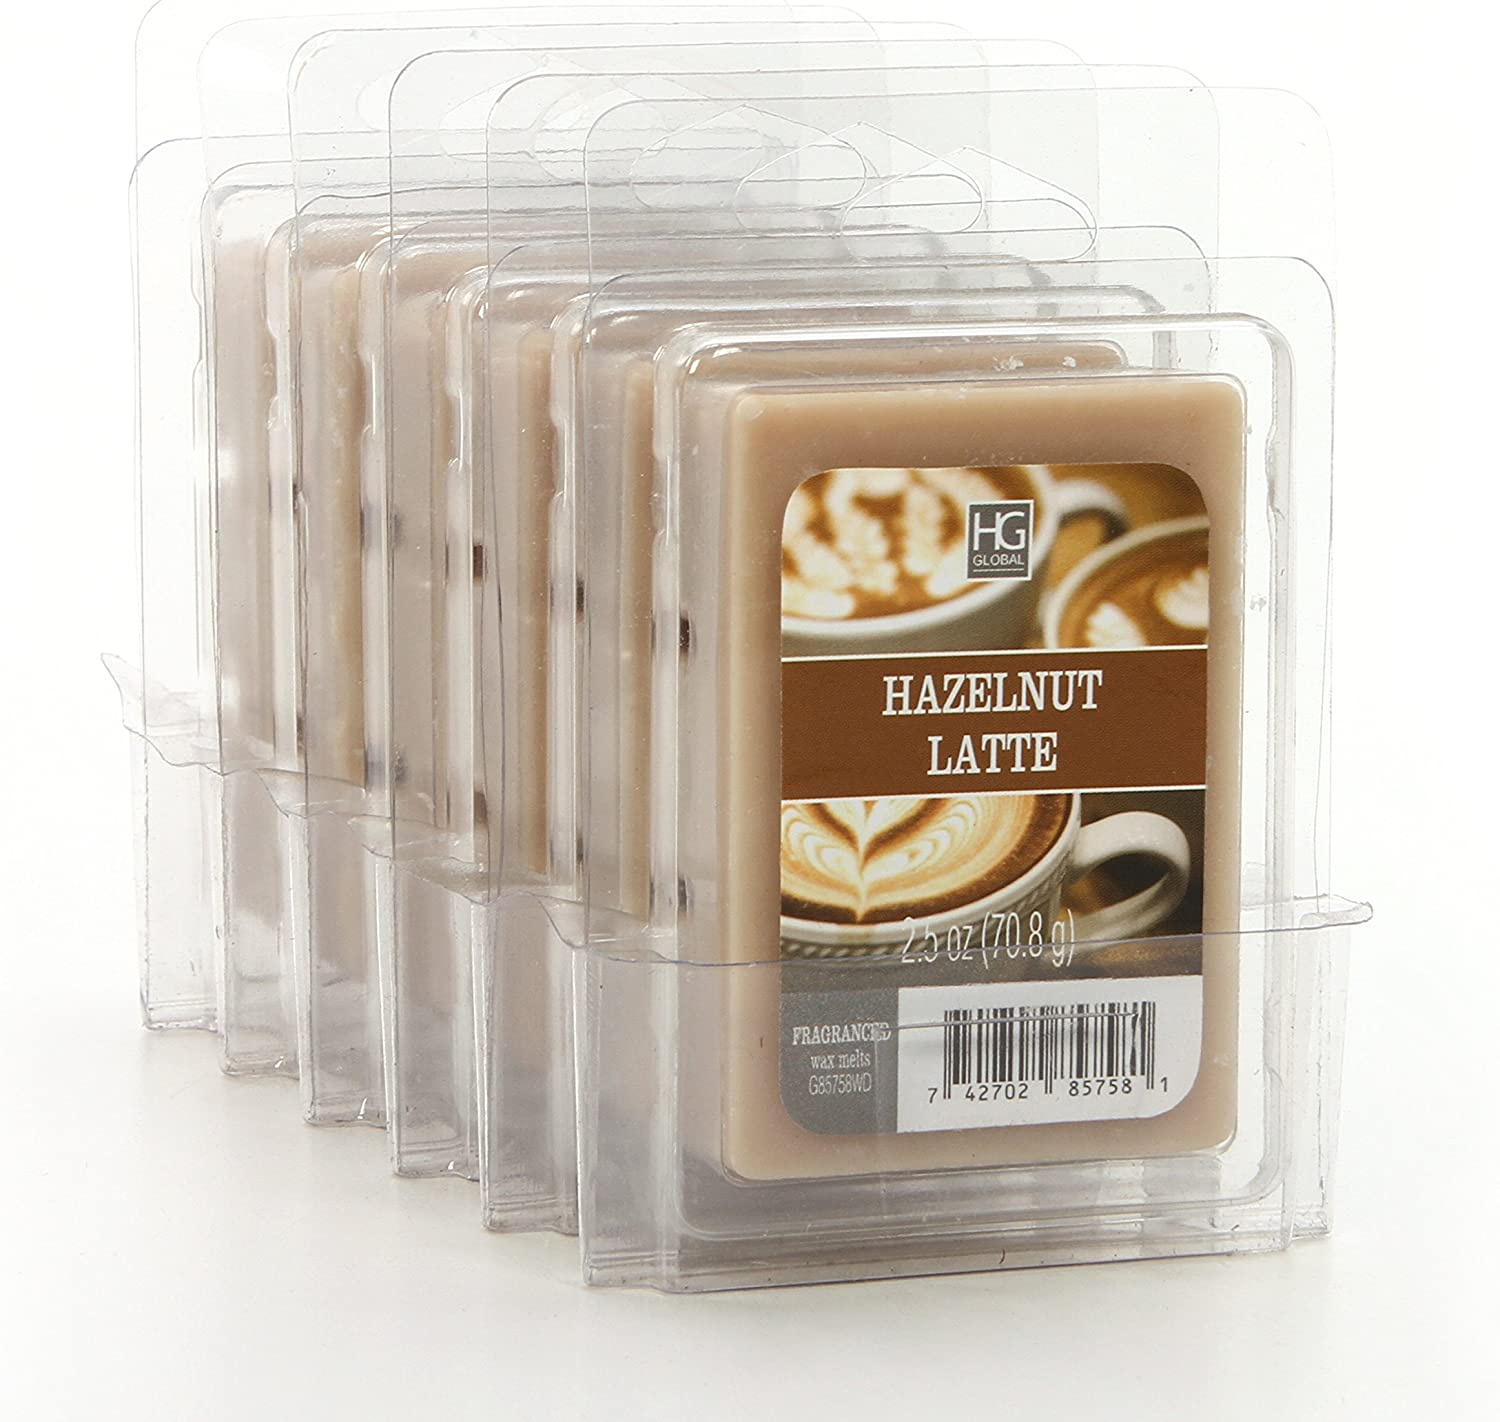 Hosley Set of 6 Hazelnut Latte Wax Cubes 2.5 Ounce Each Hand Poured Wax Infused with Essential Oils Ideal for Weddings Spa Reiki Meditation Settings W1